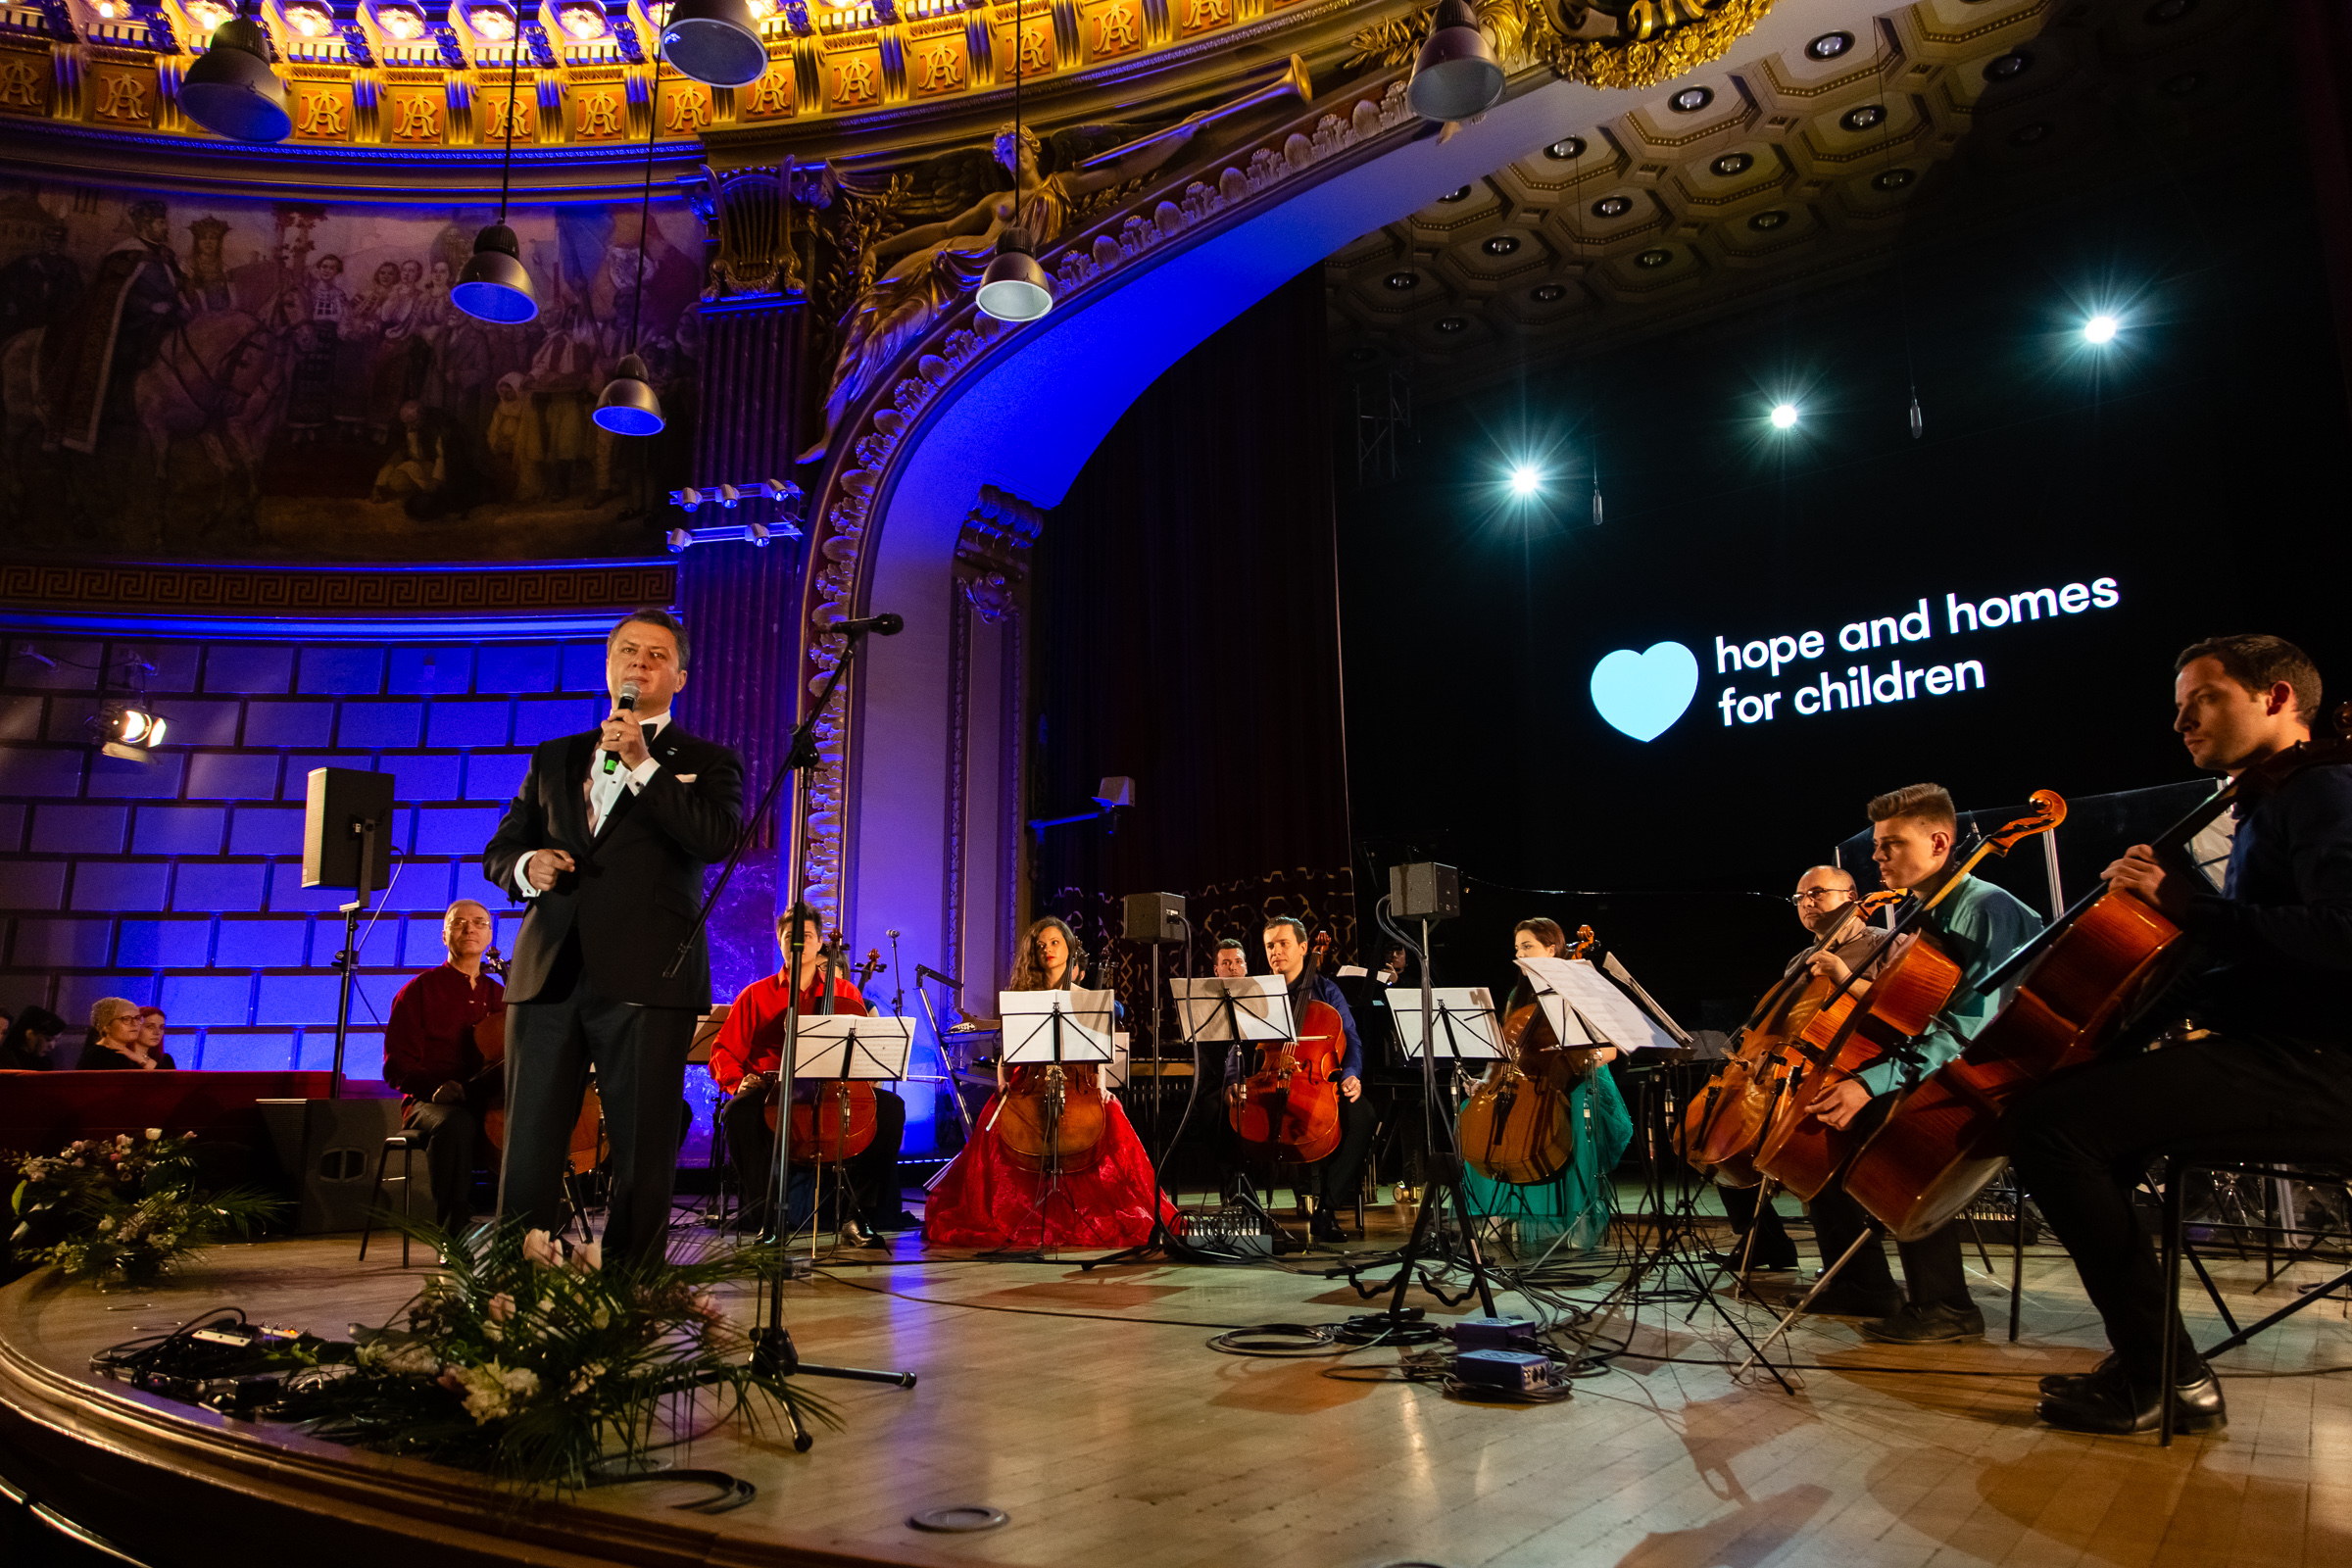 Hope Concert,  eveniment organizat de Hope and Homes for Children în sprijinul copiilor vulnerabili